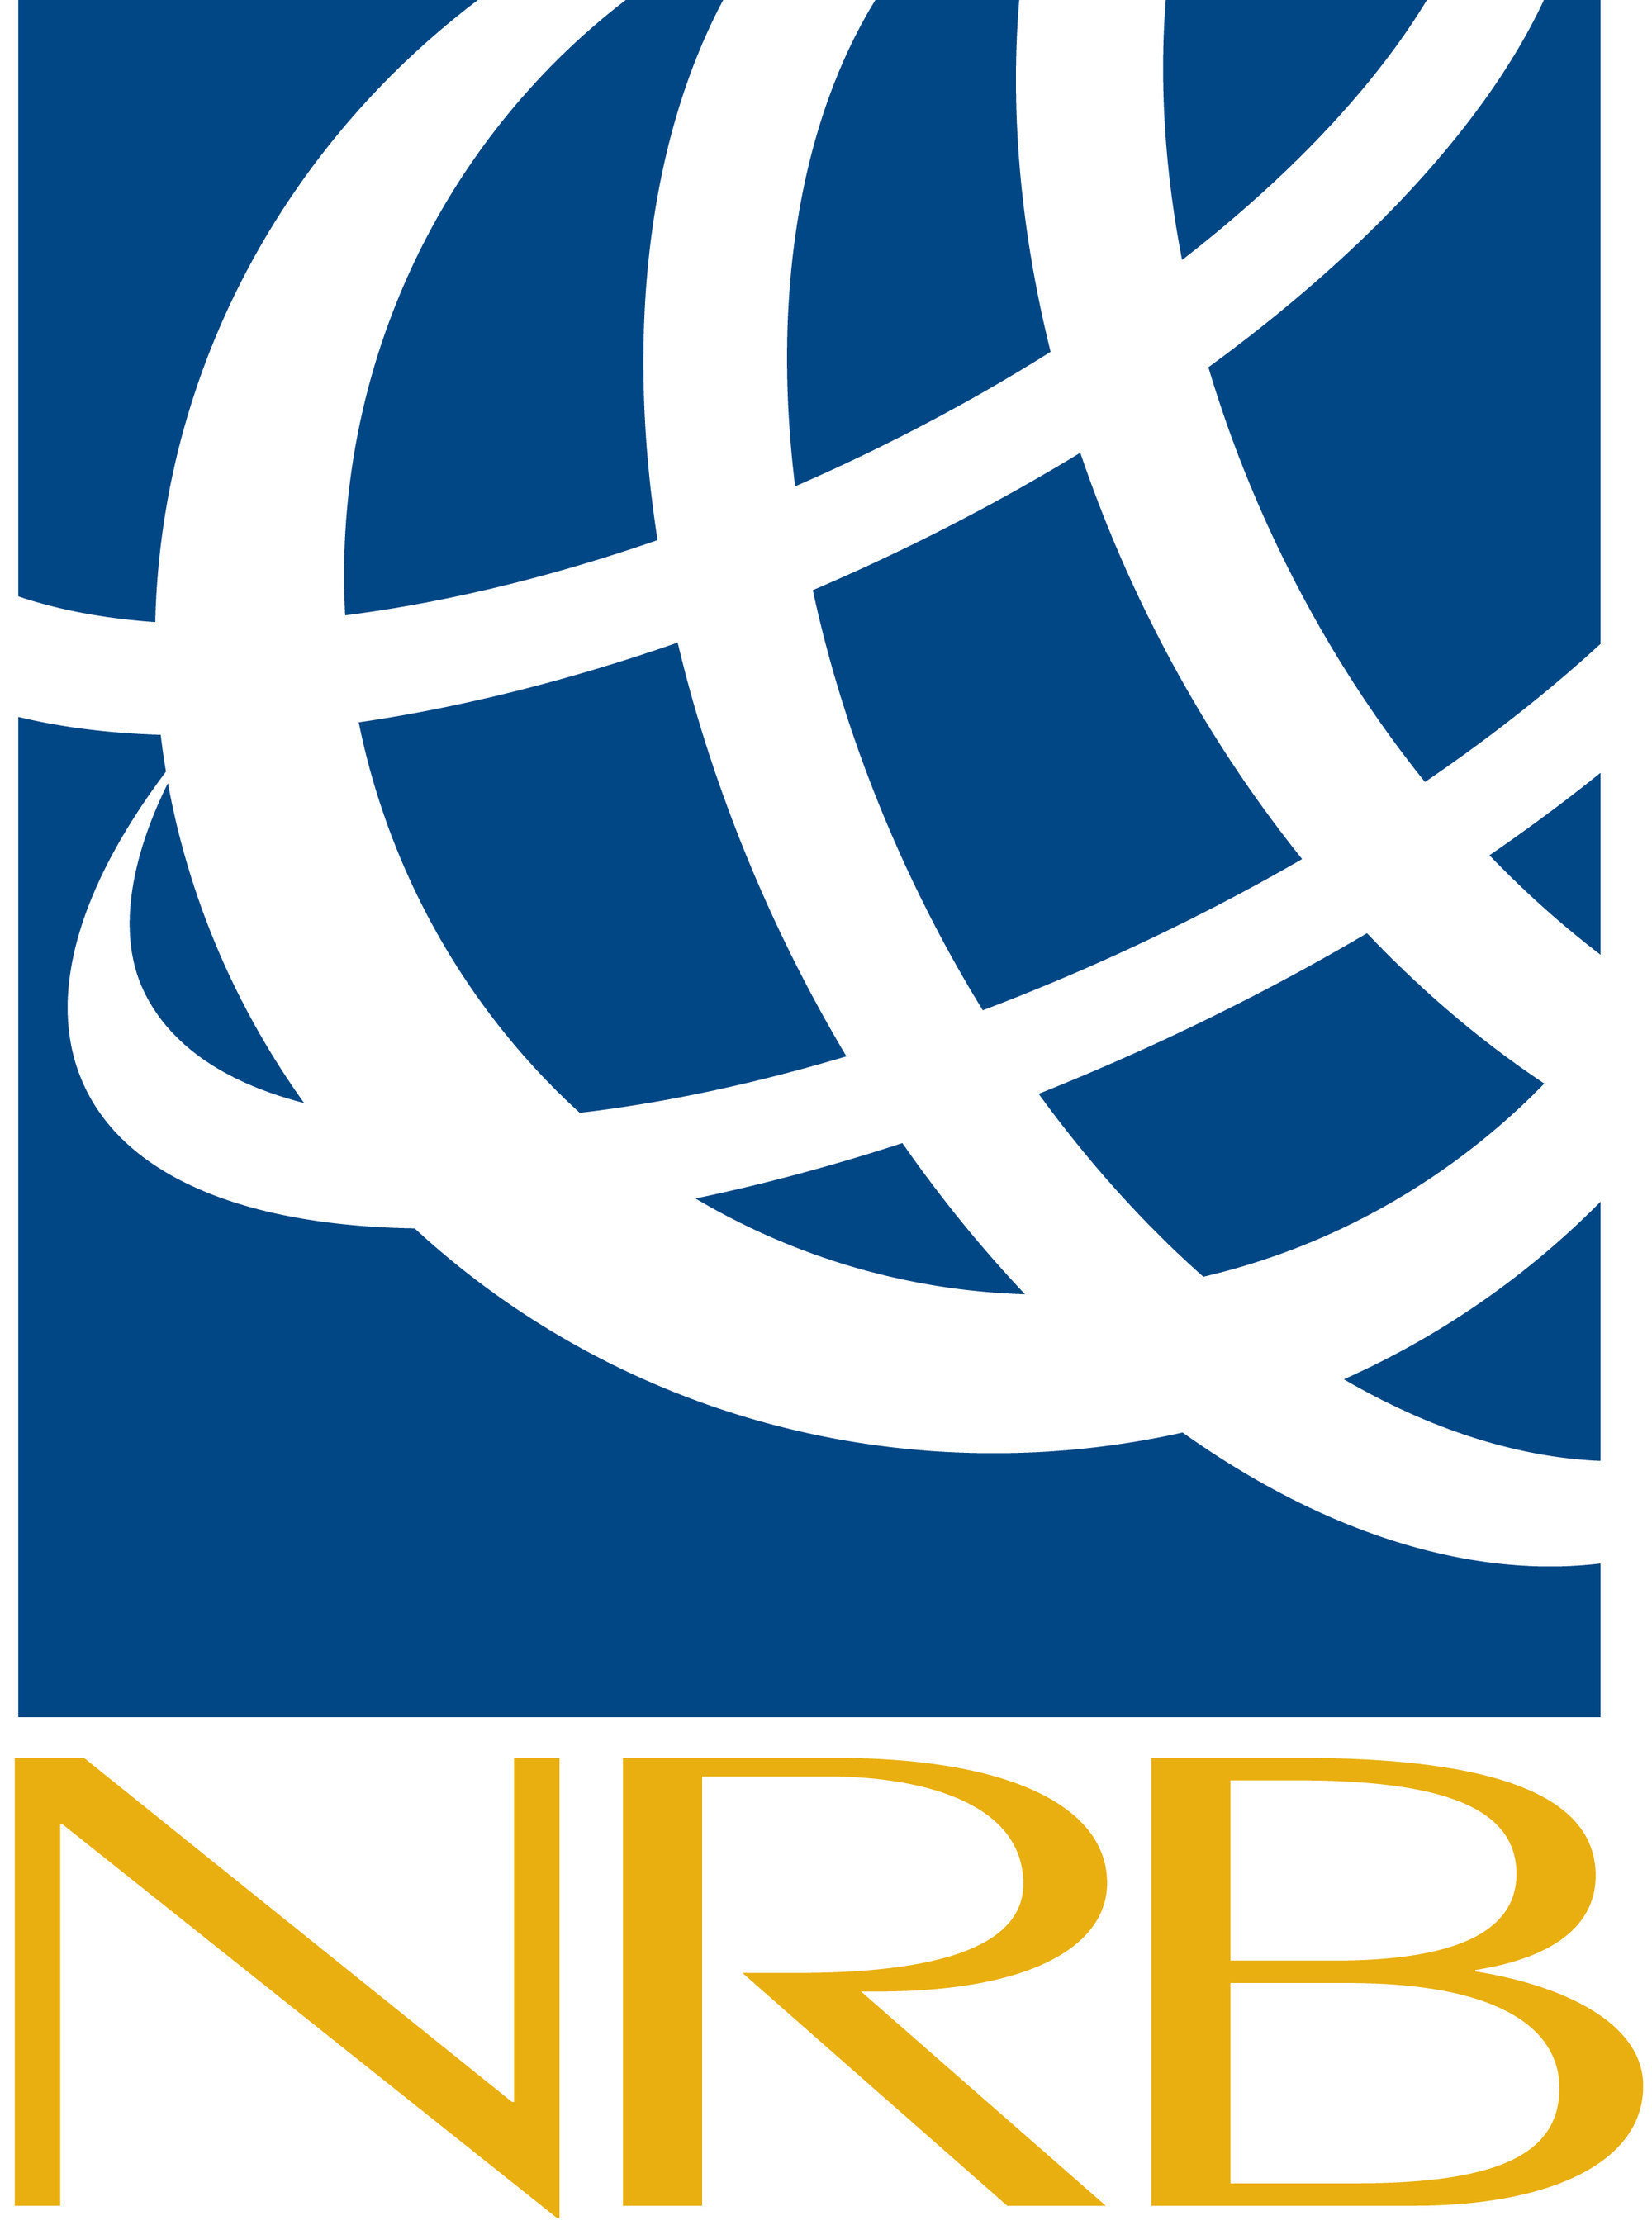 NRB Urges Congressional Action to Protect Internet Freedom 'While There's Still Time'